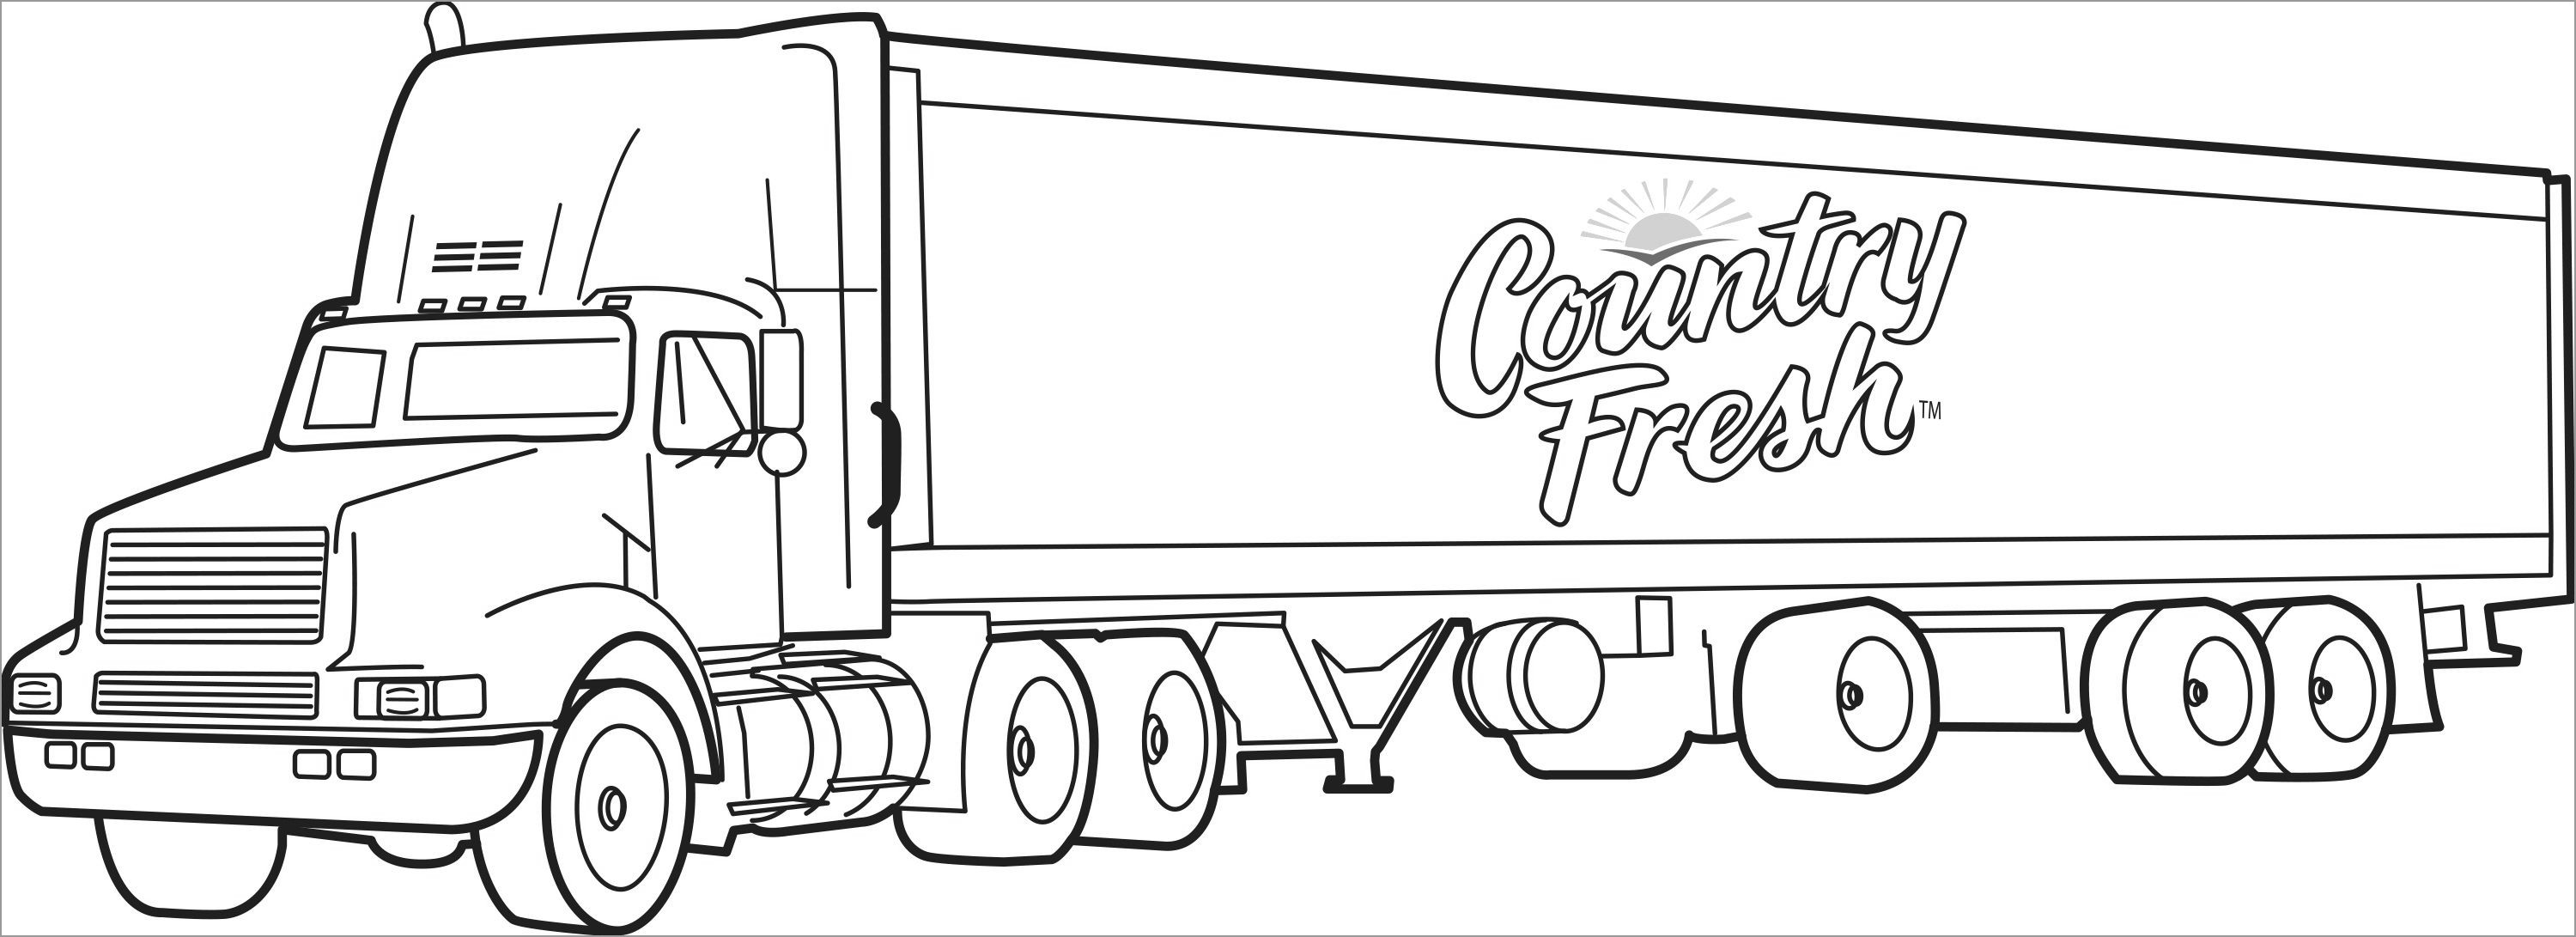 18 Wheeler Coloring Pages for Kids